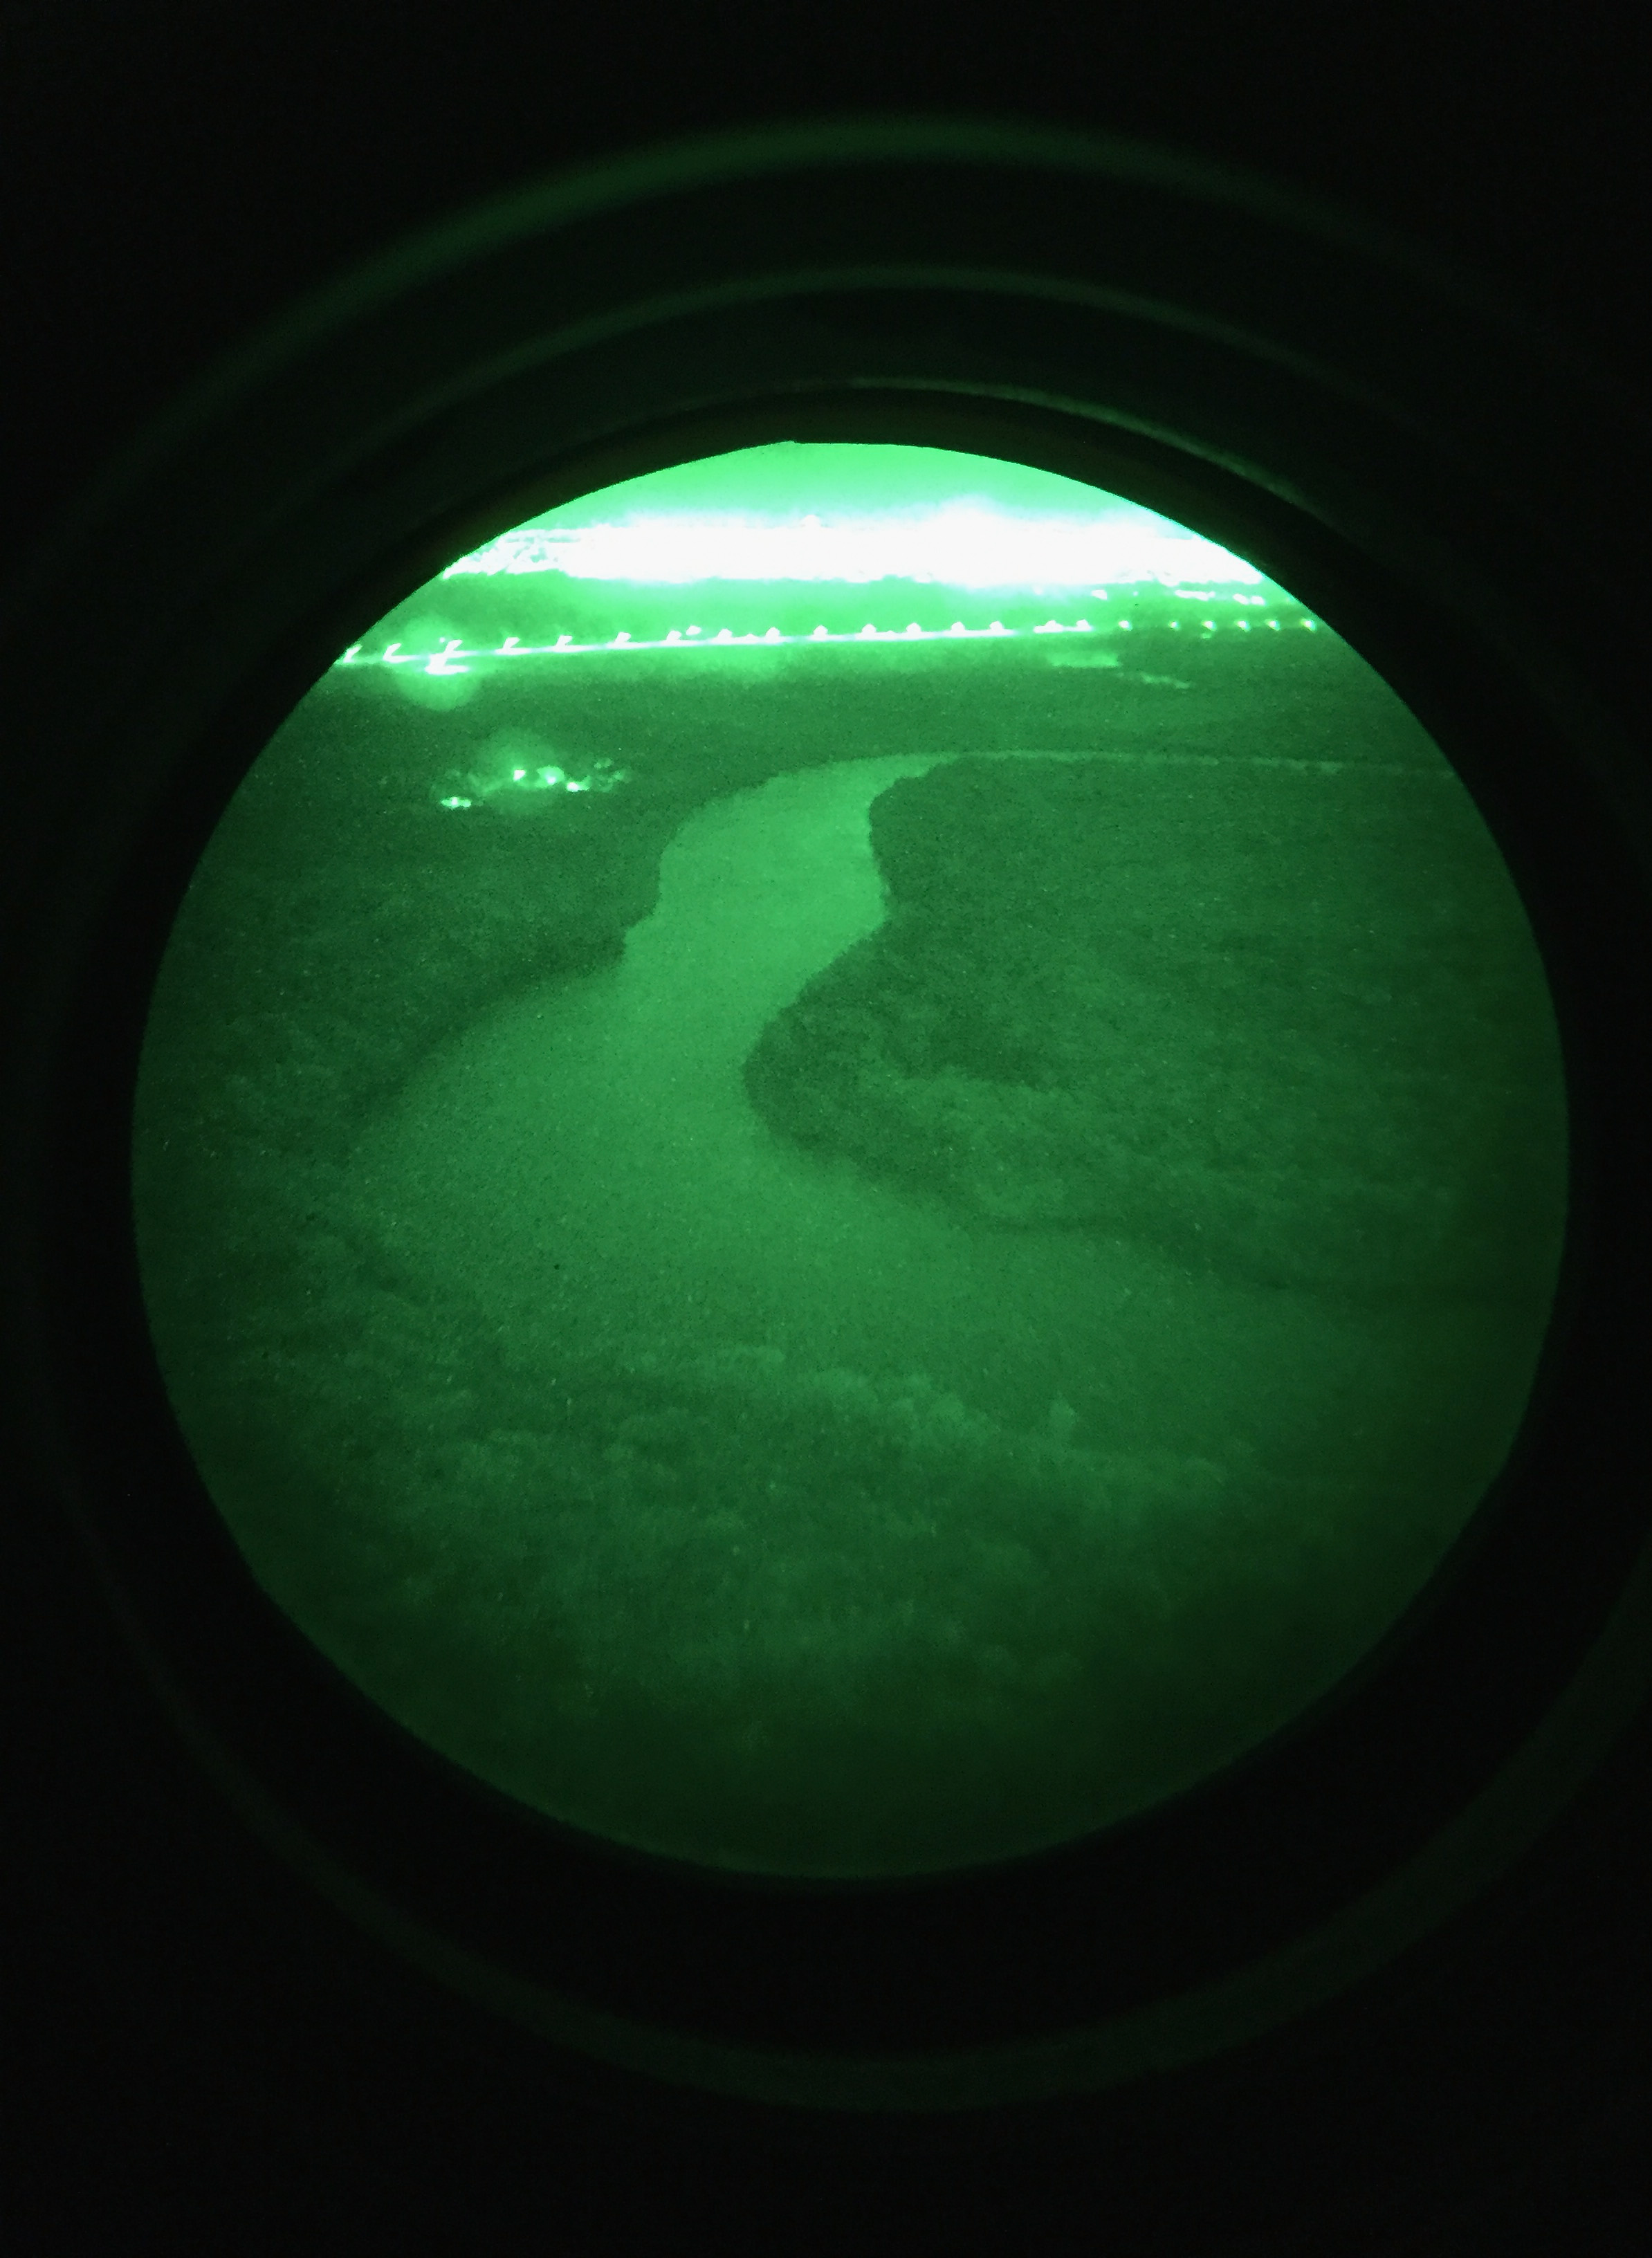 This photo made with a smart phone through night vision goggles shows the Rio Grande flowing along the U.S.-Mexico border, as seen from a U.S. Customs and Border Protection helicopter during a patrol over the U.S.-Mexico border on Oct. 18, 2016 in McAllen, Texas.